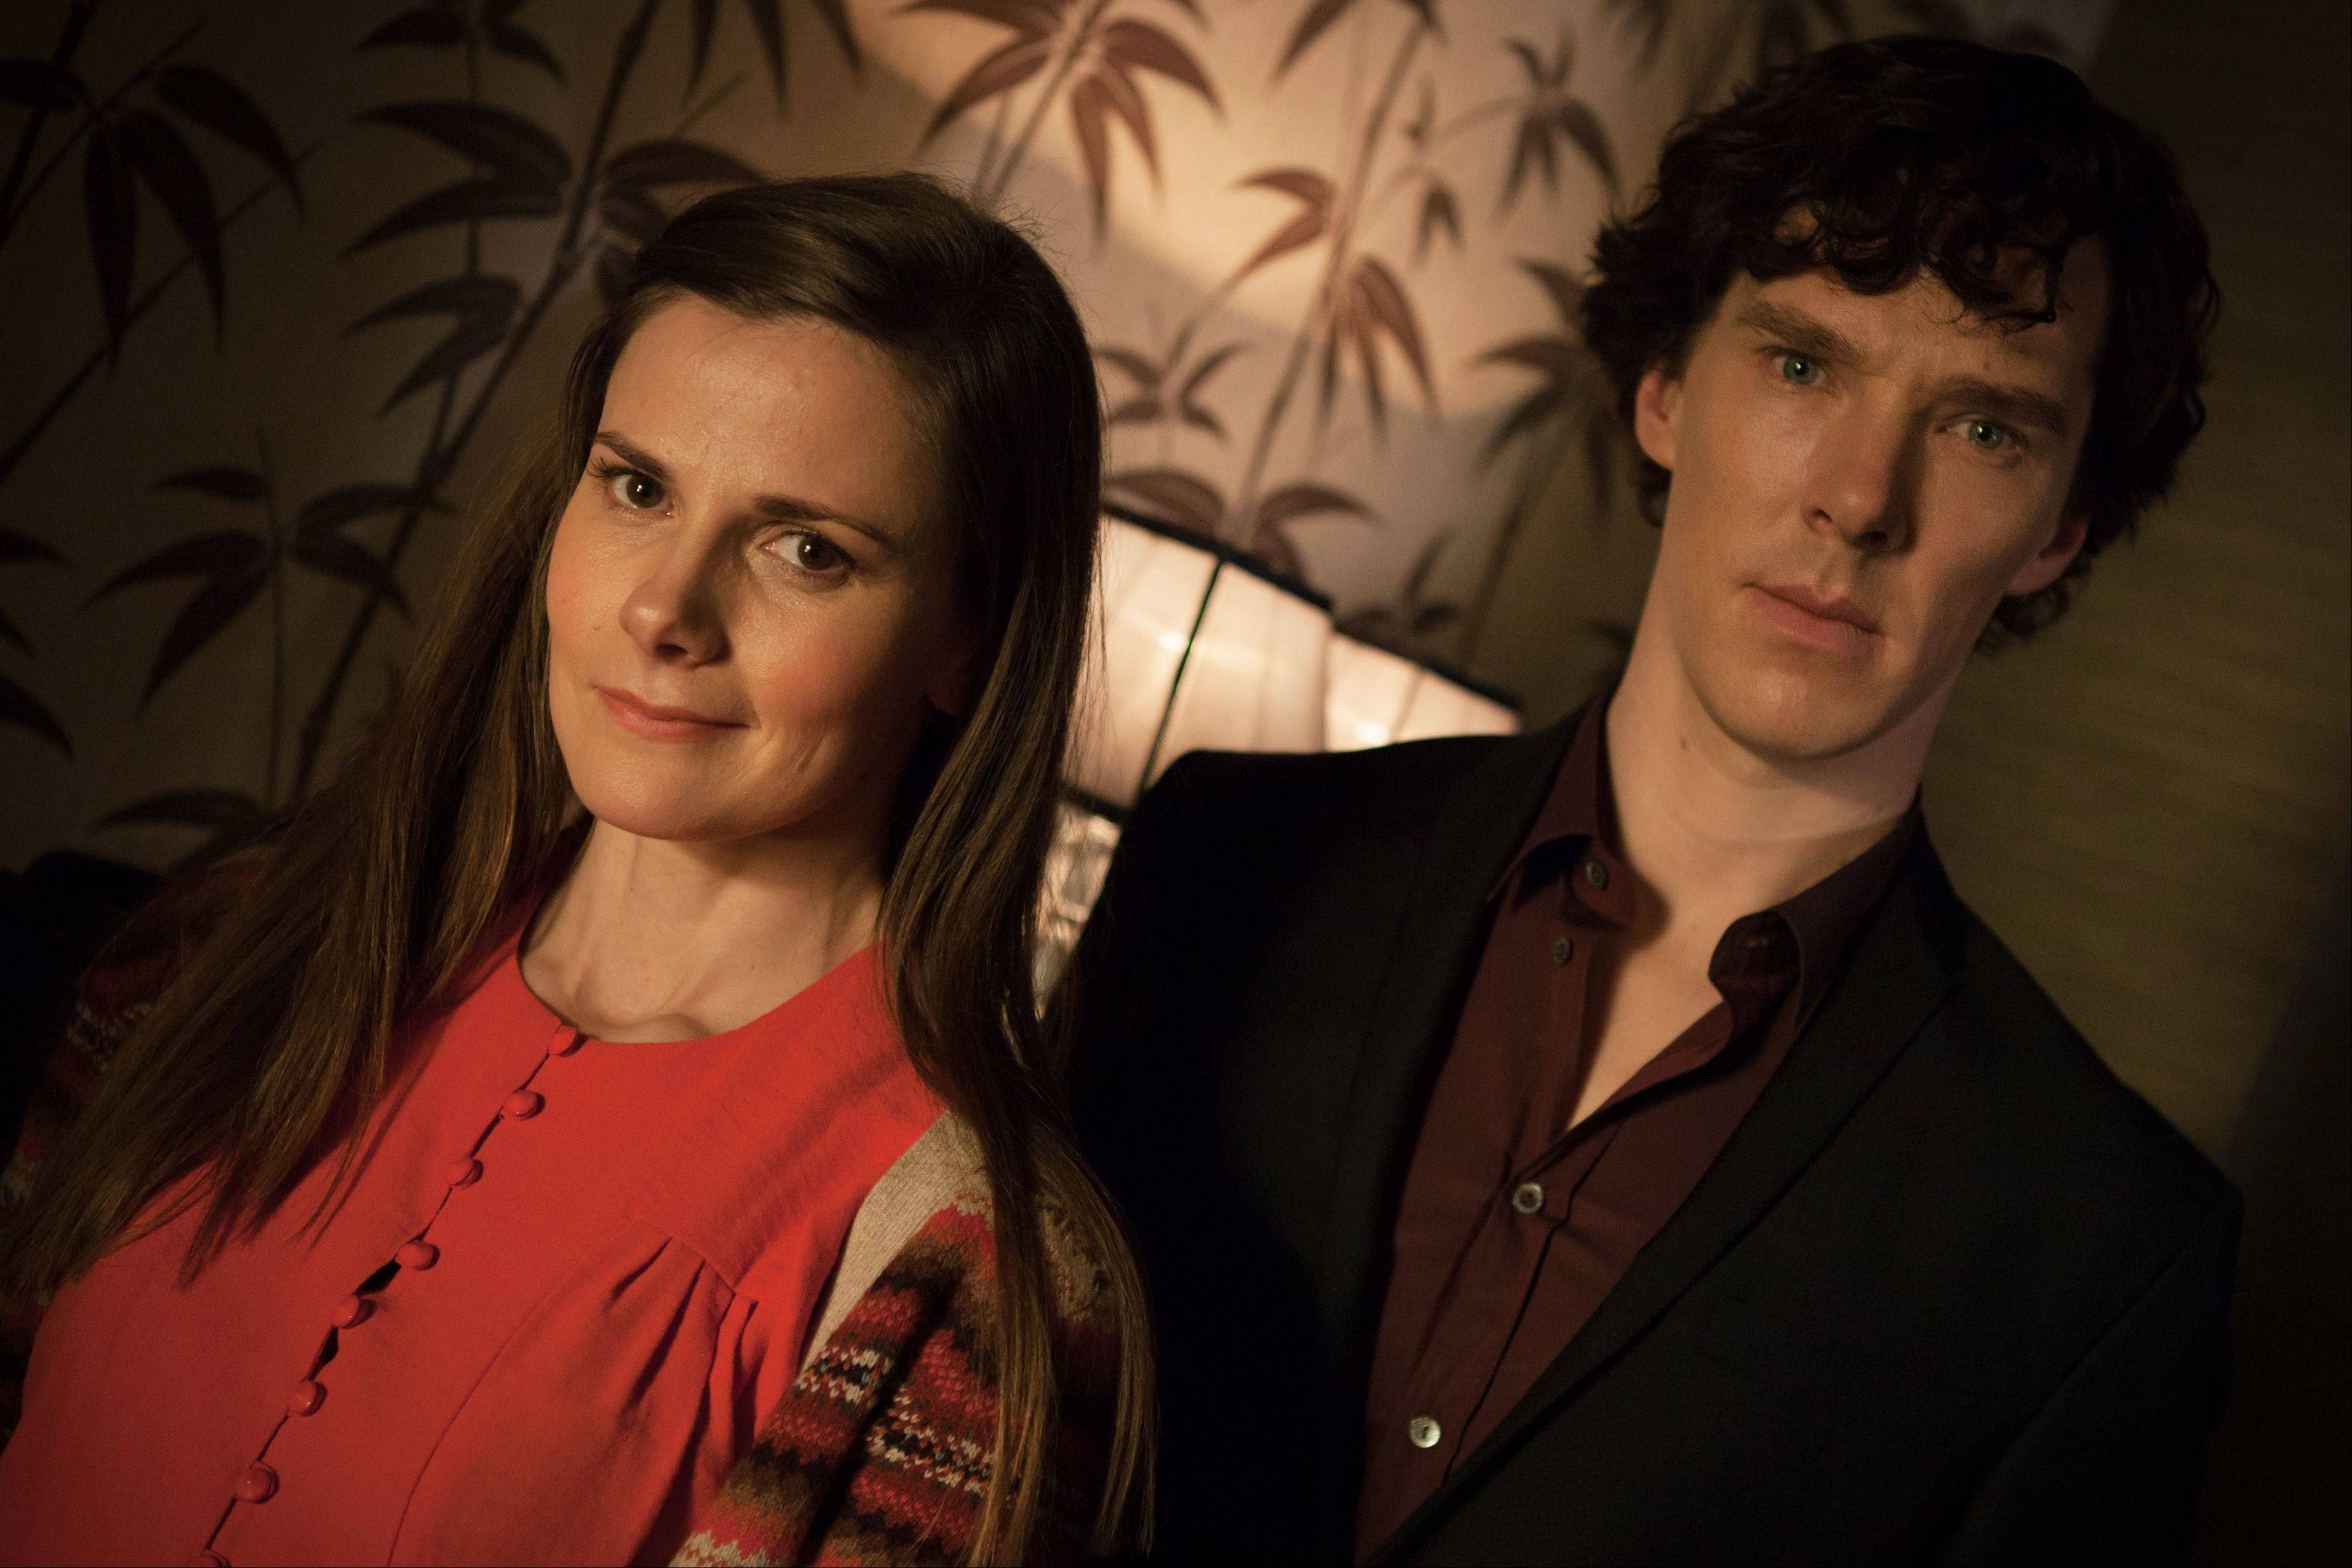 Louise Brealey, left, plays Molly Hooper and Benedict Cumberbatch is Sherlock Holmes in Season 3�s �The Empty Hearse� episode of Masterpiece�s �Sherlock,� which aired on Sunday on PBS. Steven Moffat, co-creator of �Sherlock,� said the show is a hit in China and many other countries.